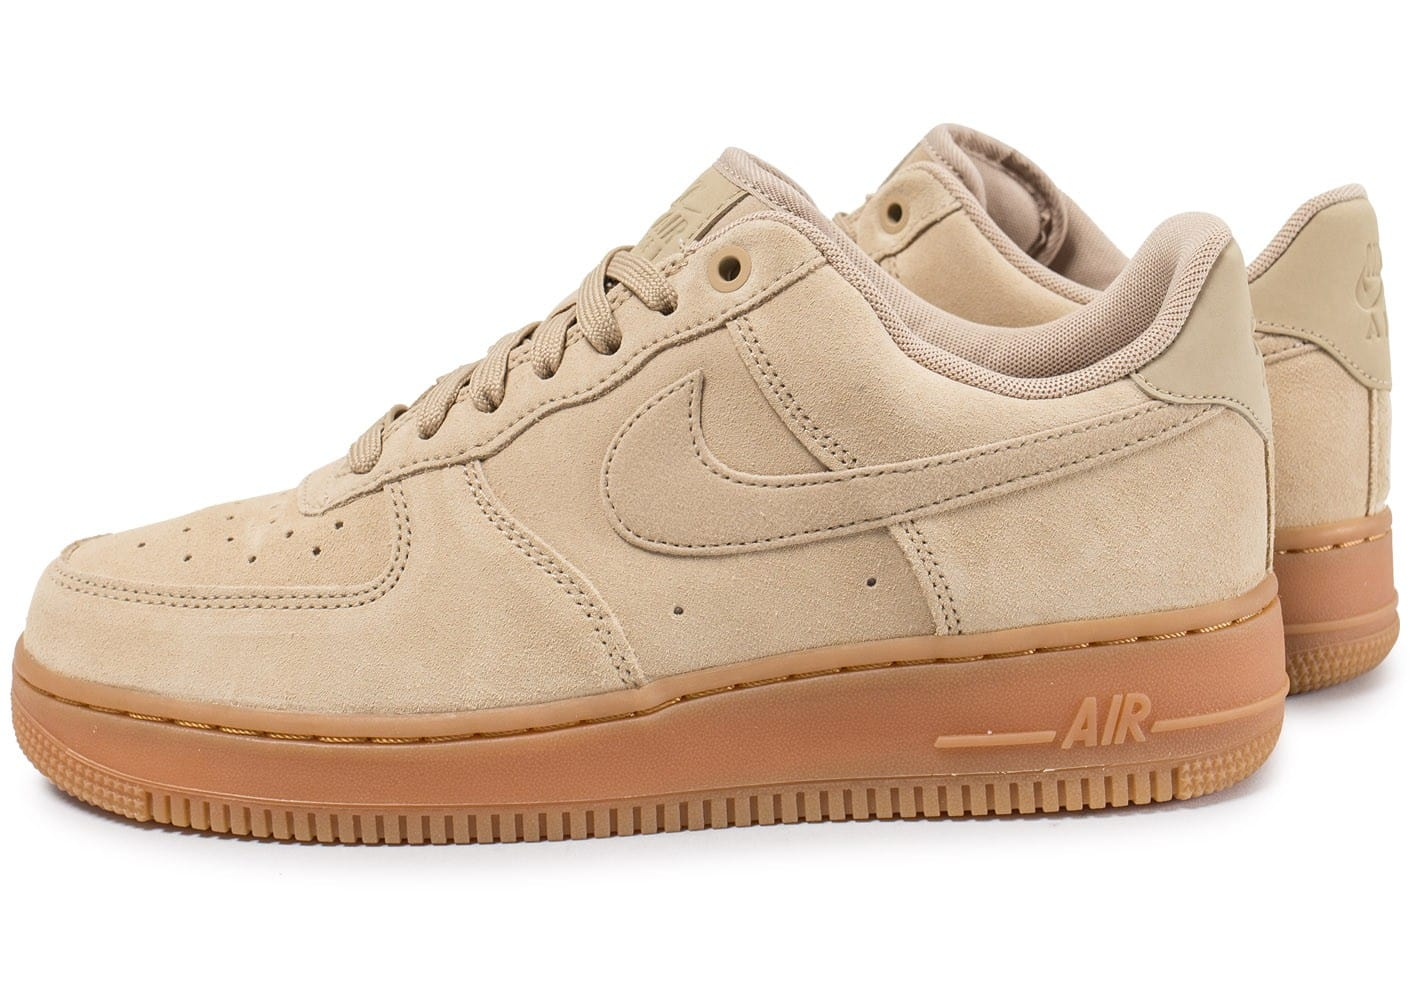 the best attitude 92eab efdc8 nike air force 1 homme suede